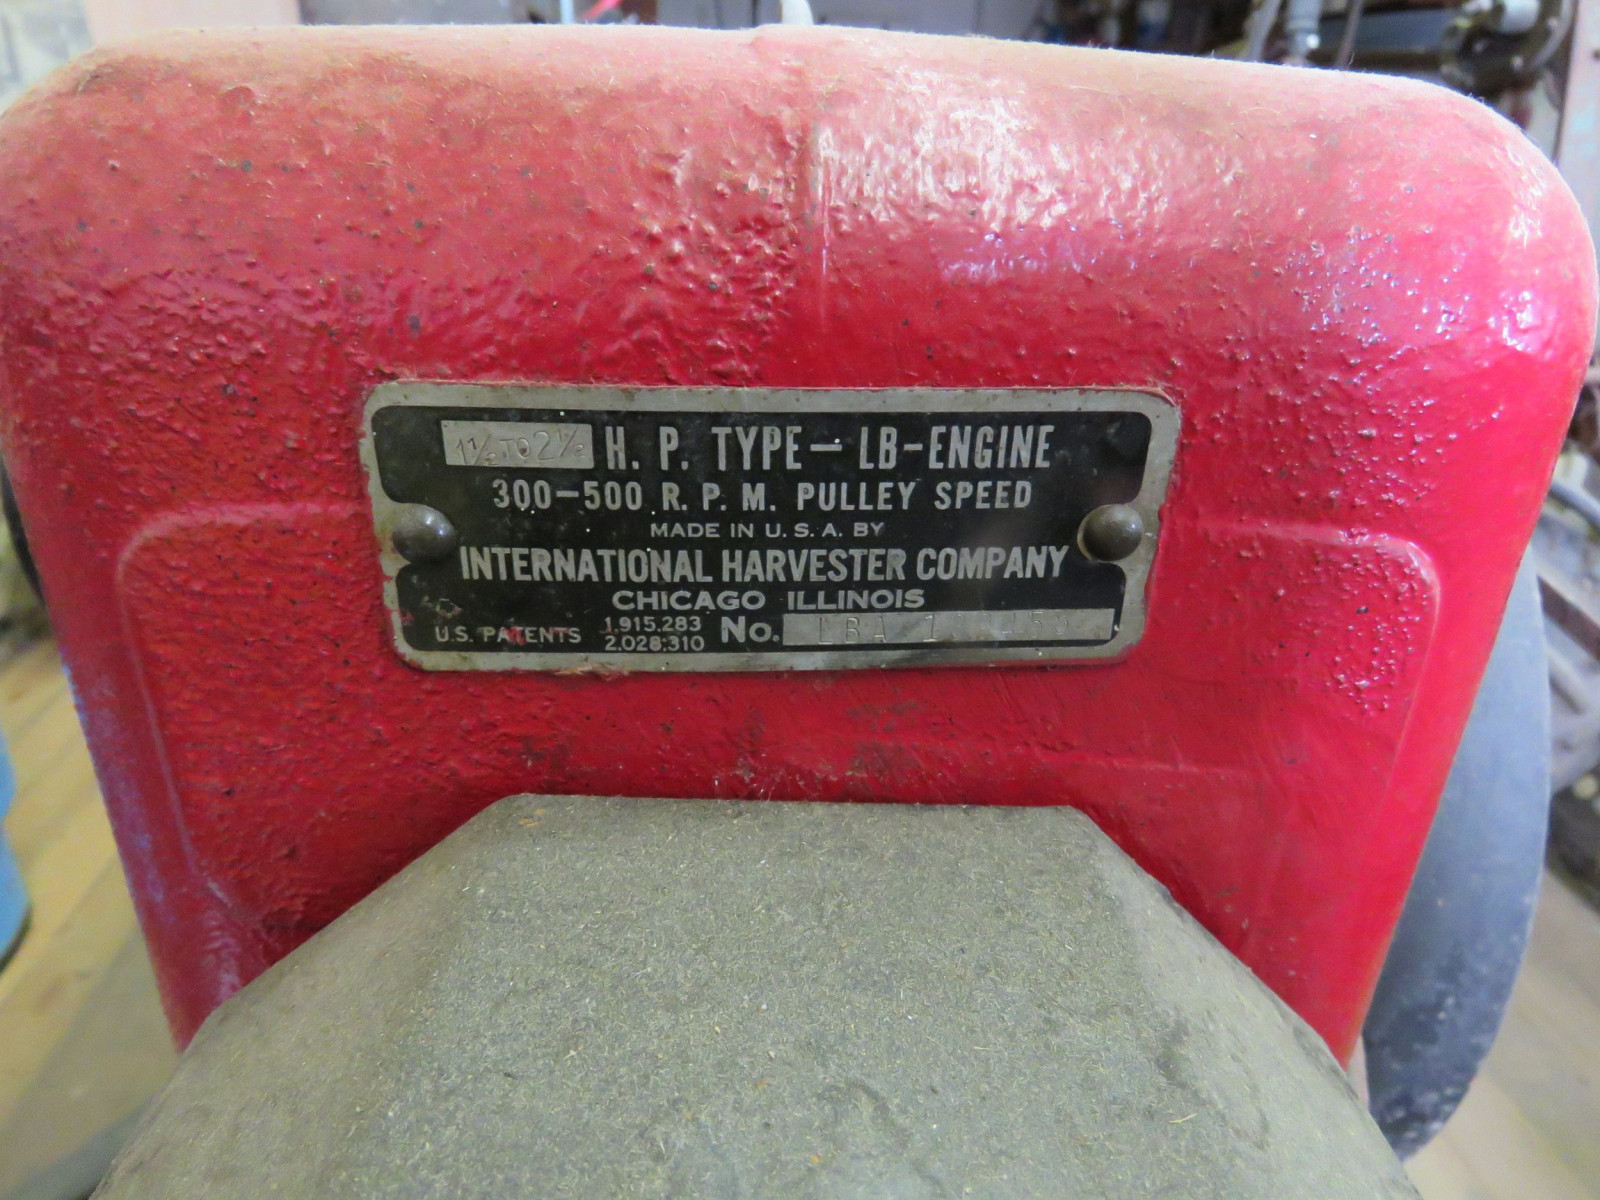 International 1 1/2hp-2hp Type LB Gas Engine - Image 3